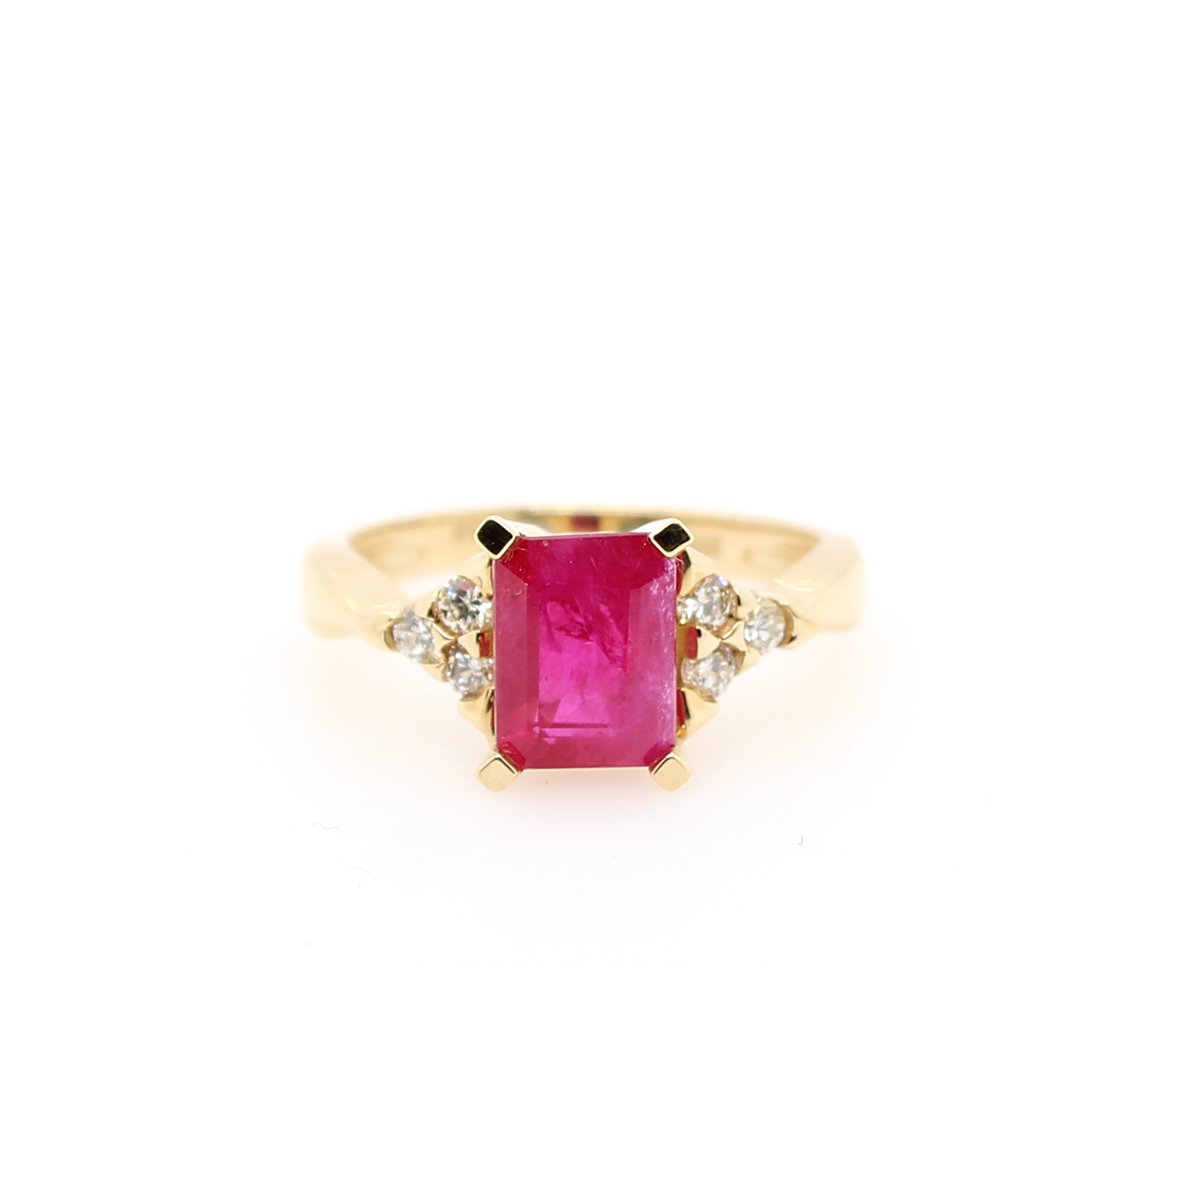 Ryan Gems 14 Karat Yellow Gold Emerald Cut Ruby and Diamond ring